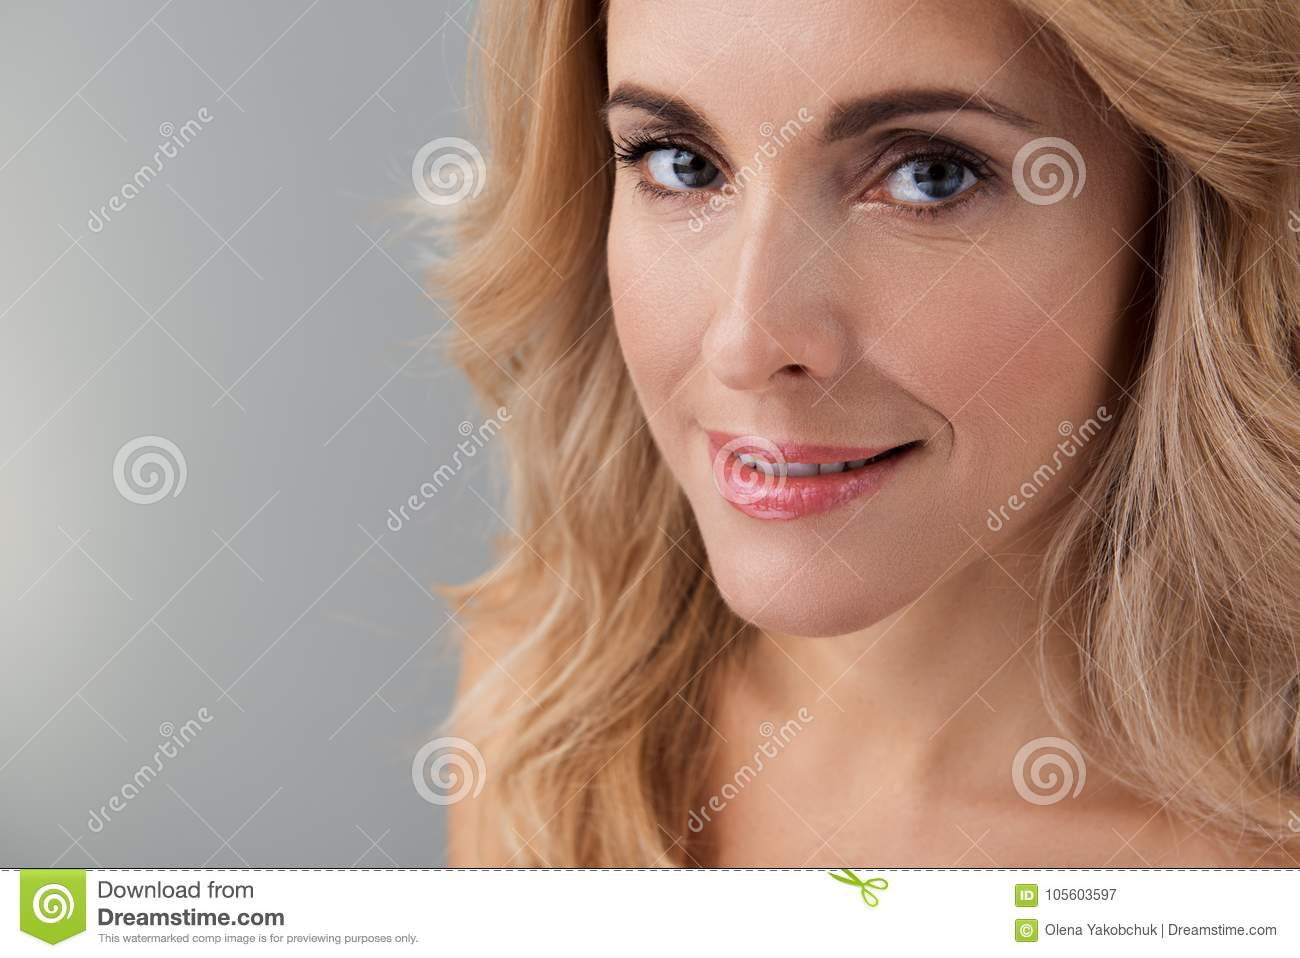 Aged attractiv women nudes useful question